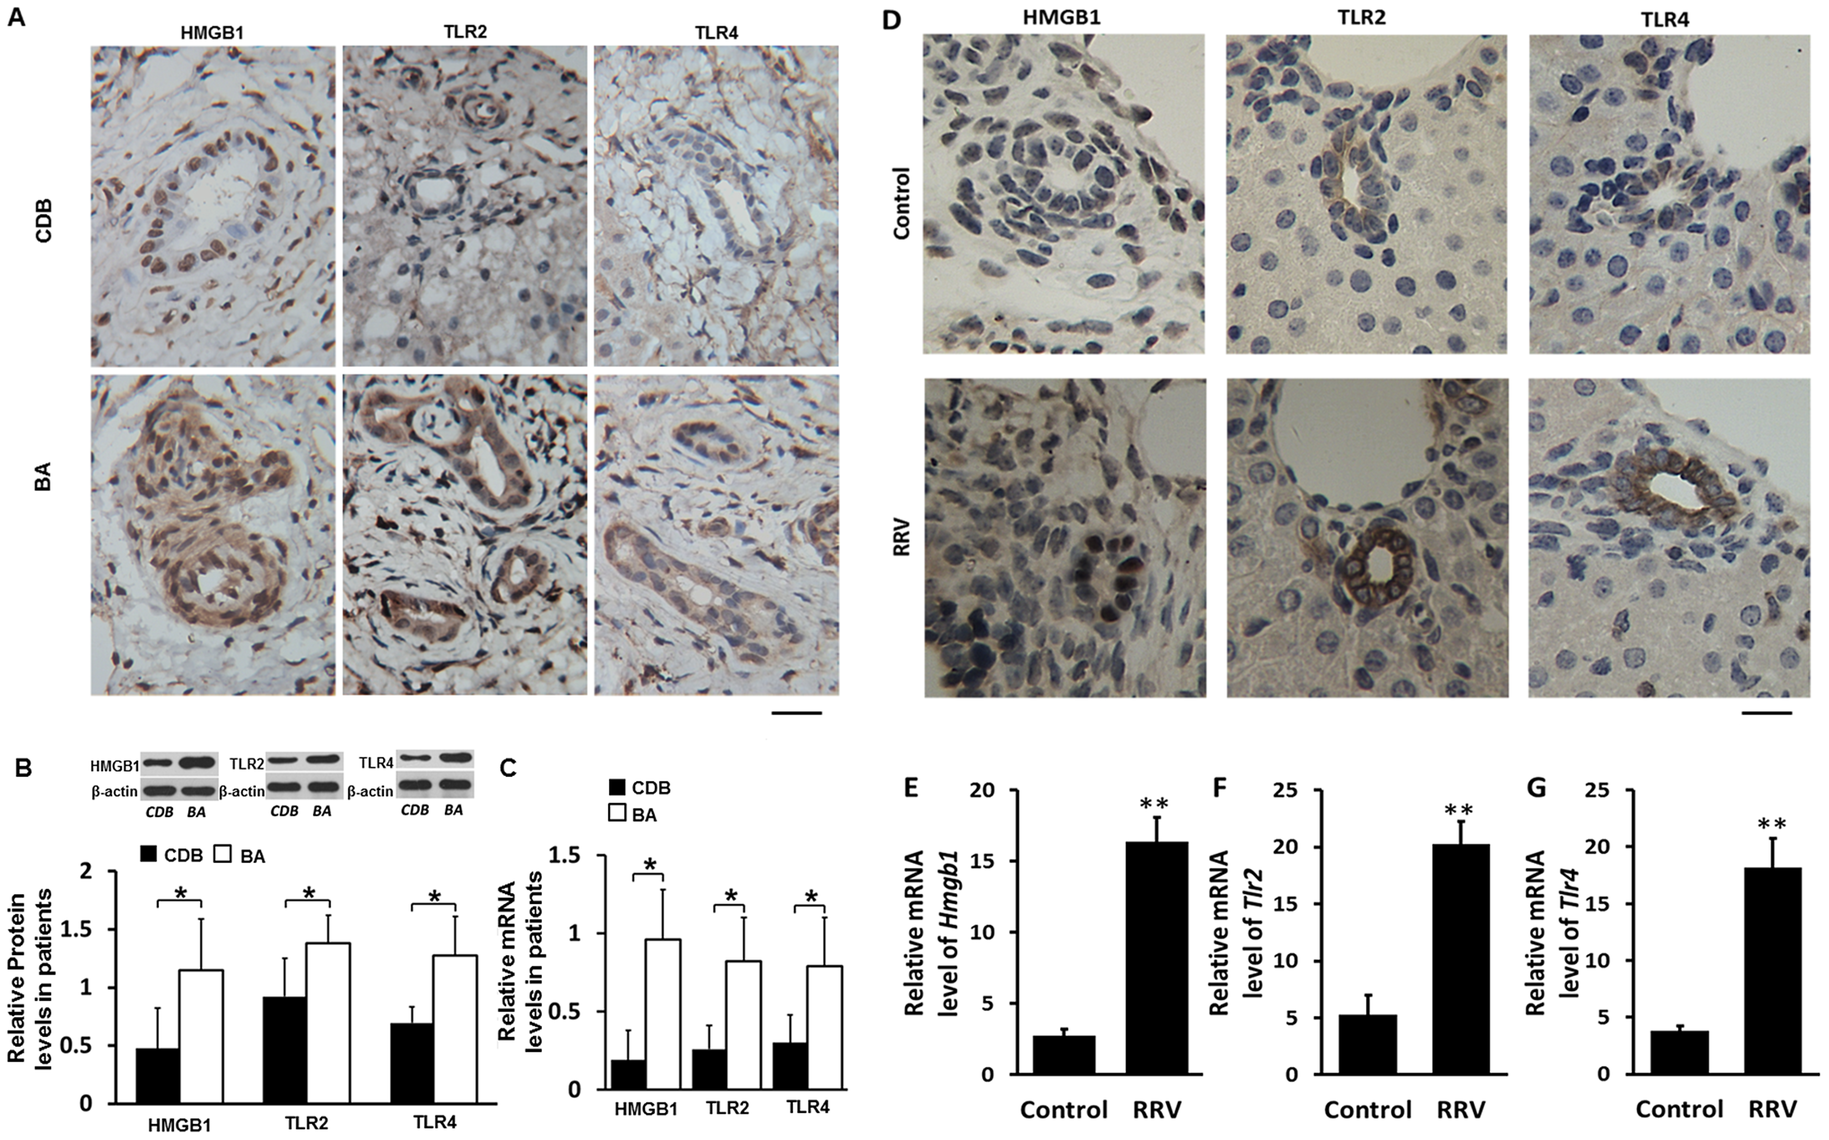 Expression of HMGB1, TLR2 and TLR4 in livers of infants with biliary atresia (BA) and in bile ducts of mice challenged with RRV.